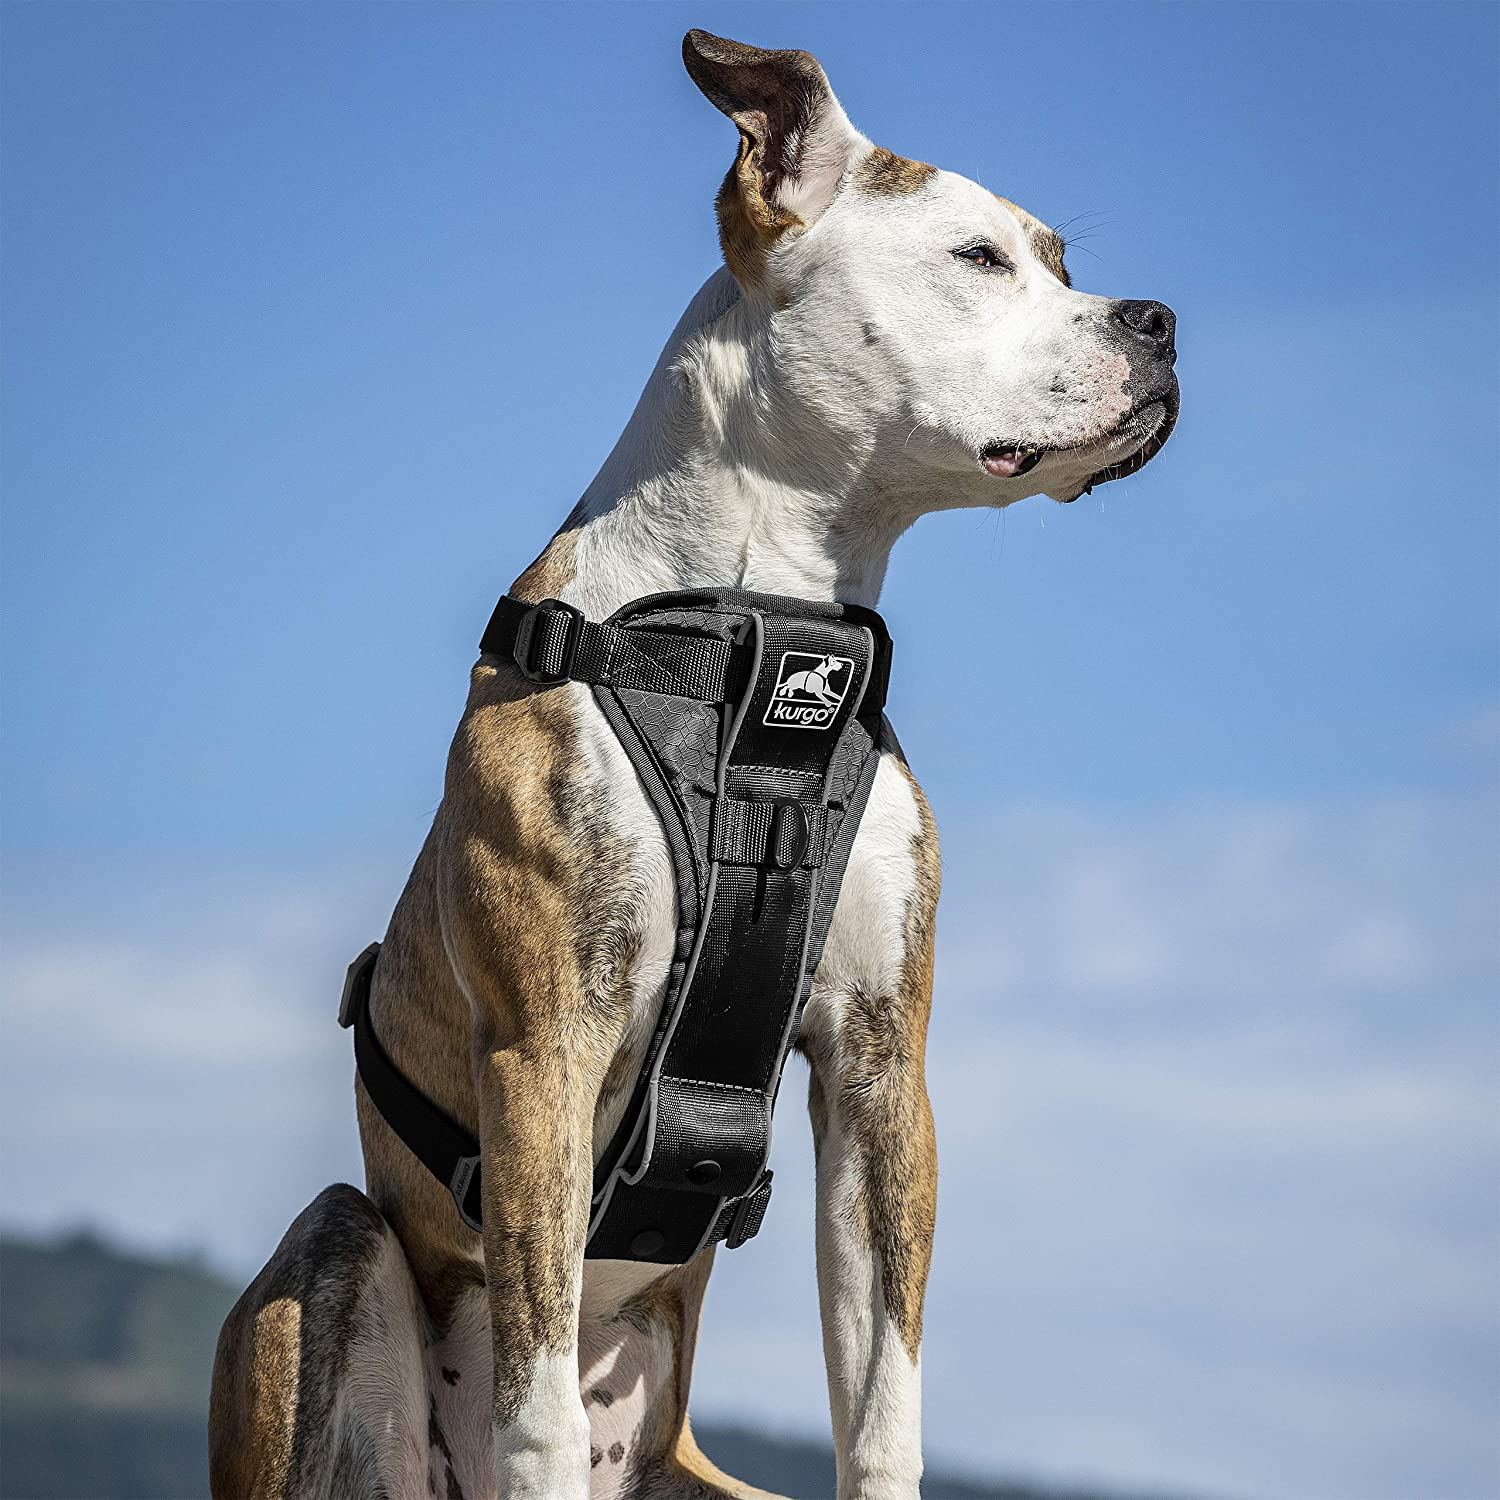 Kurgo Tru-Fit Smart Harness, image via Kurgo.